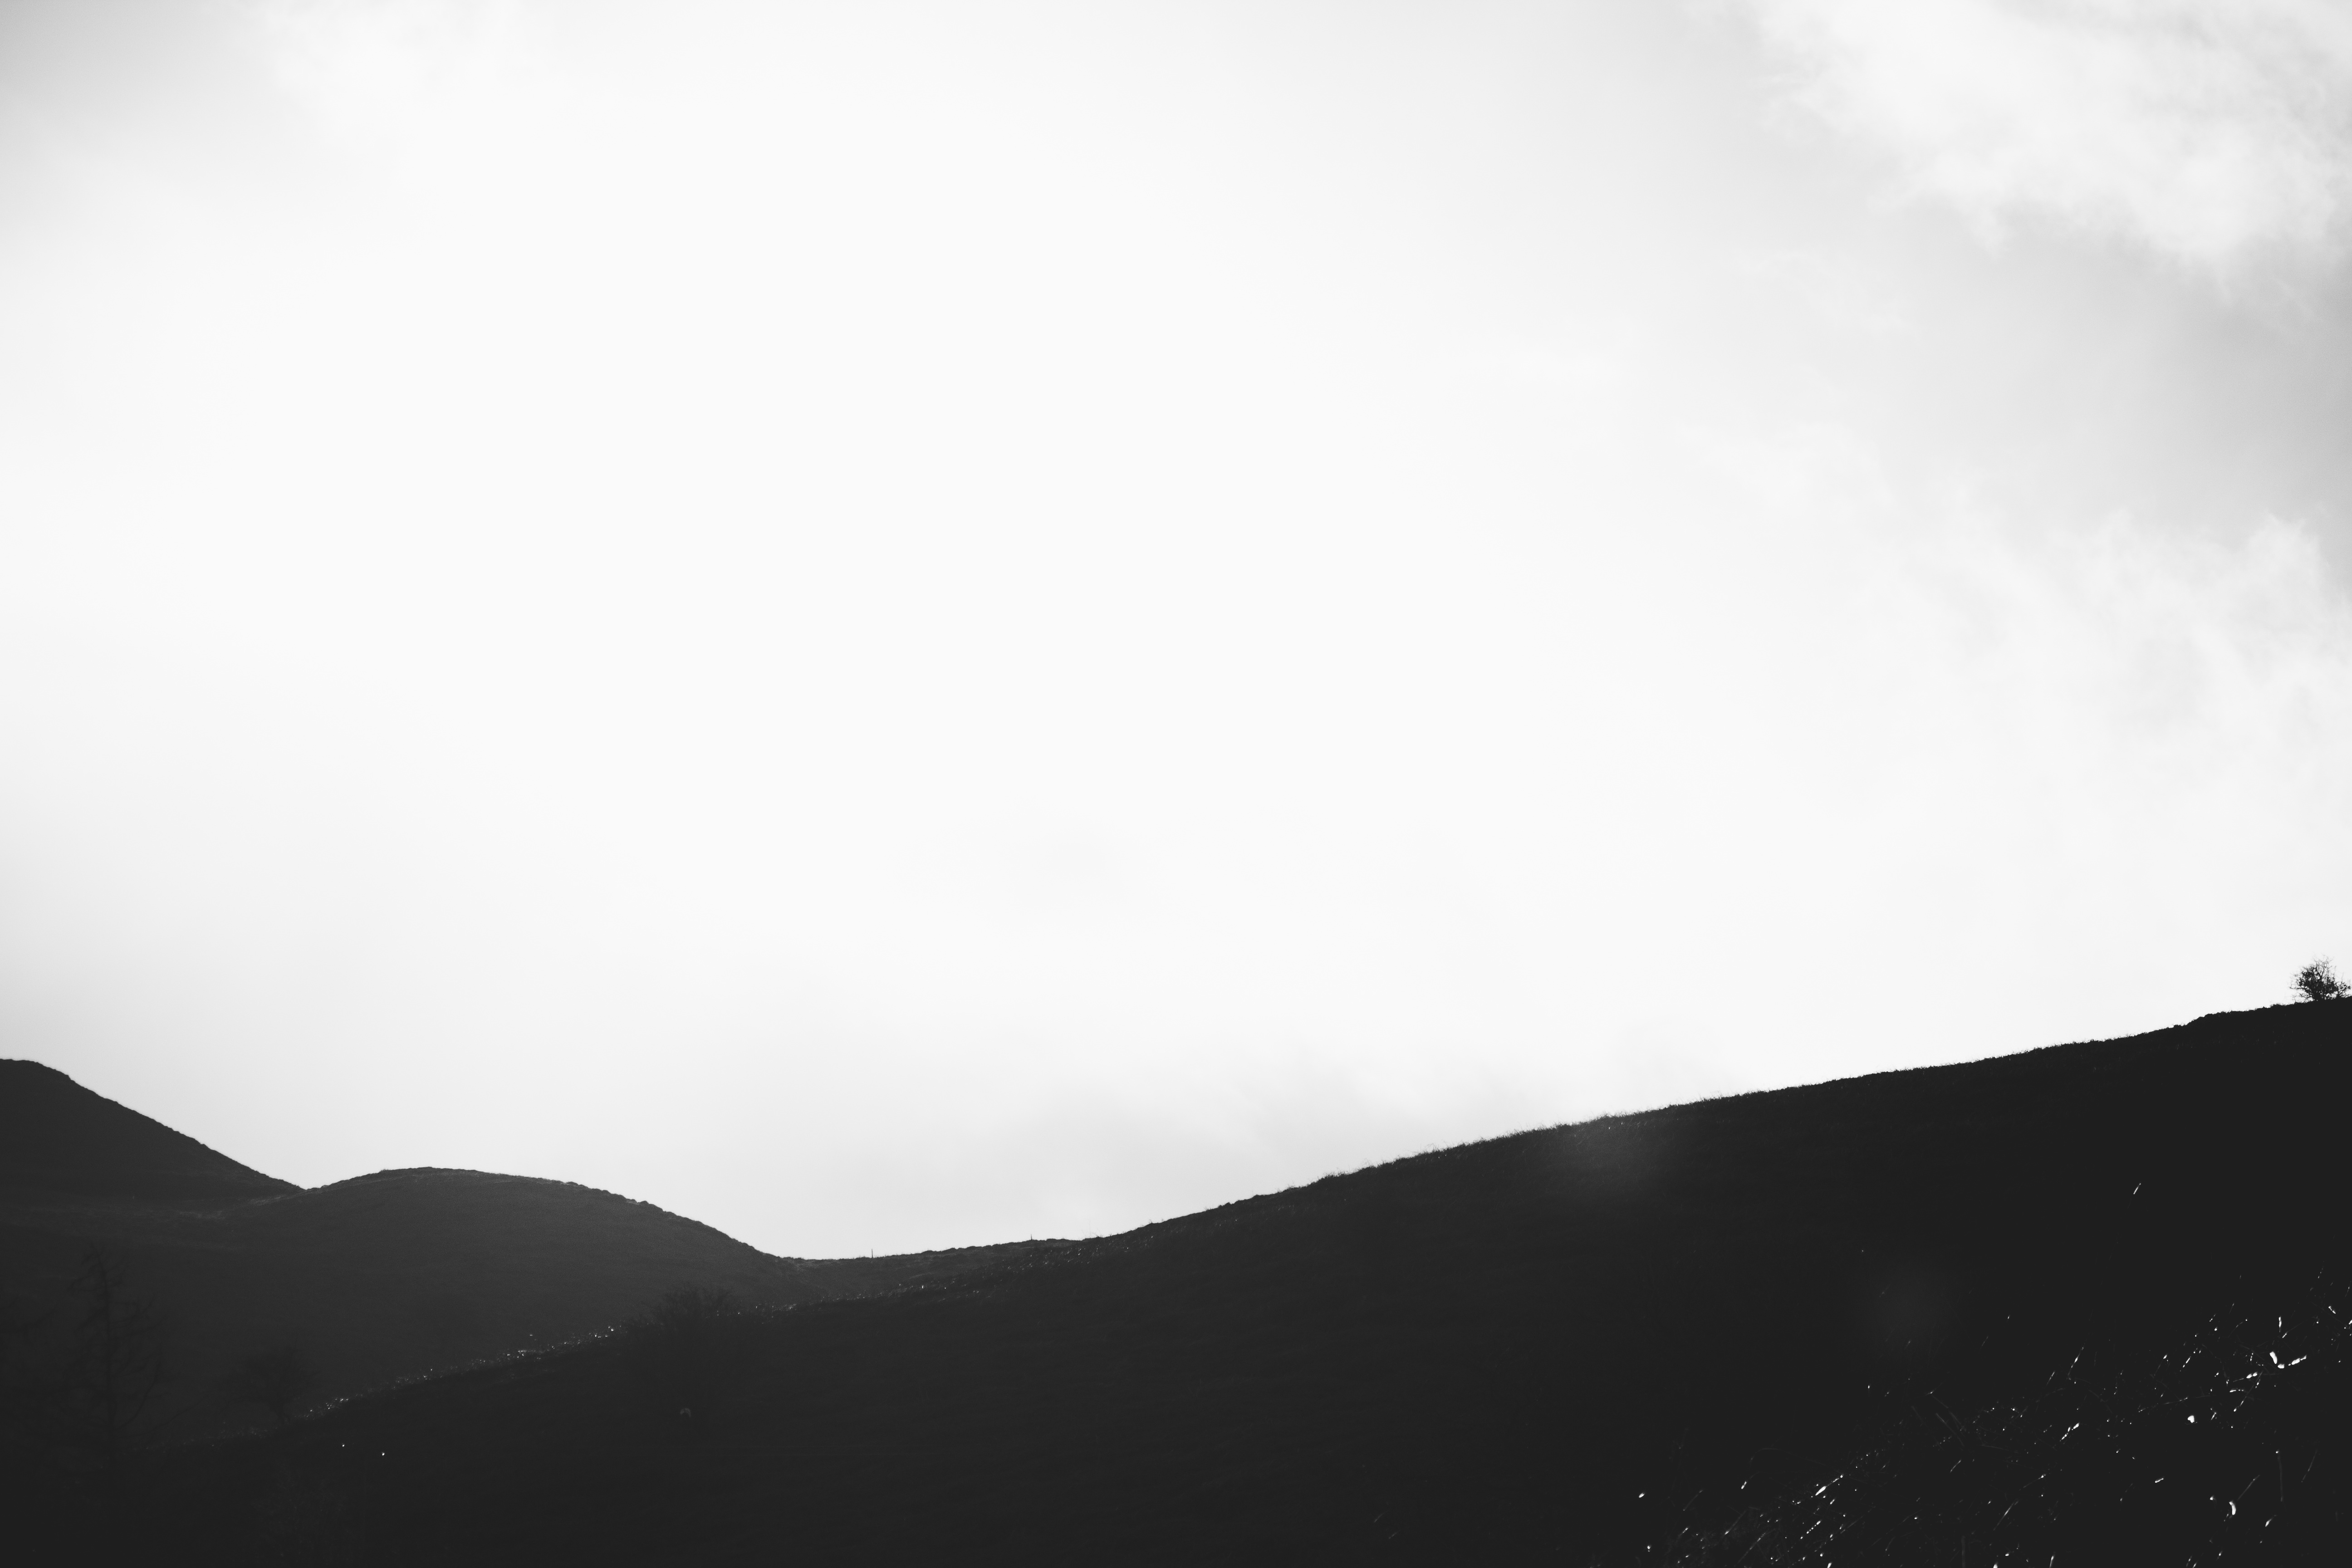 Dunes in black and white, dunes, mountains, hills, silhouettes, shadows, light, white and black